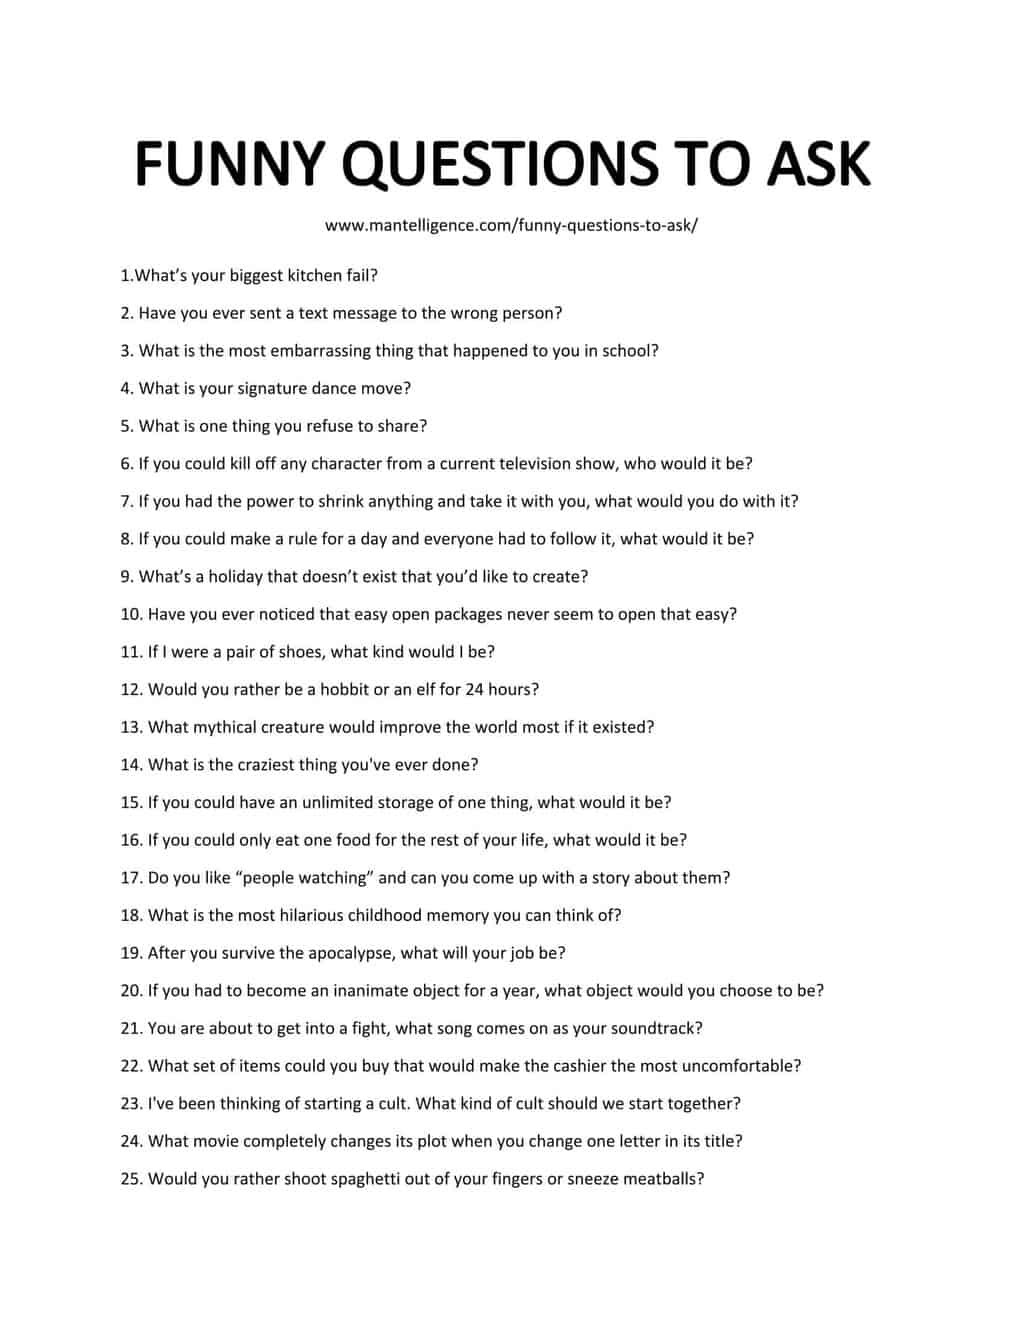 List of Funny Questions To Ask